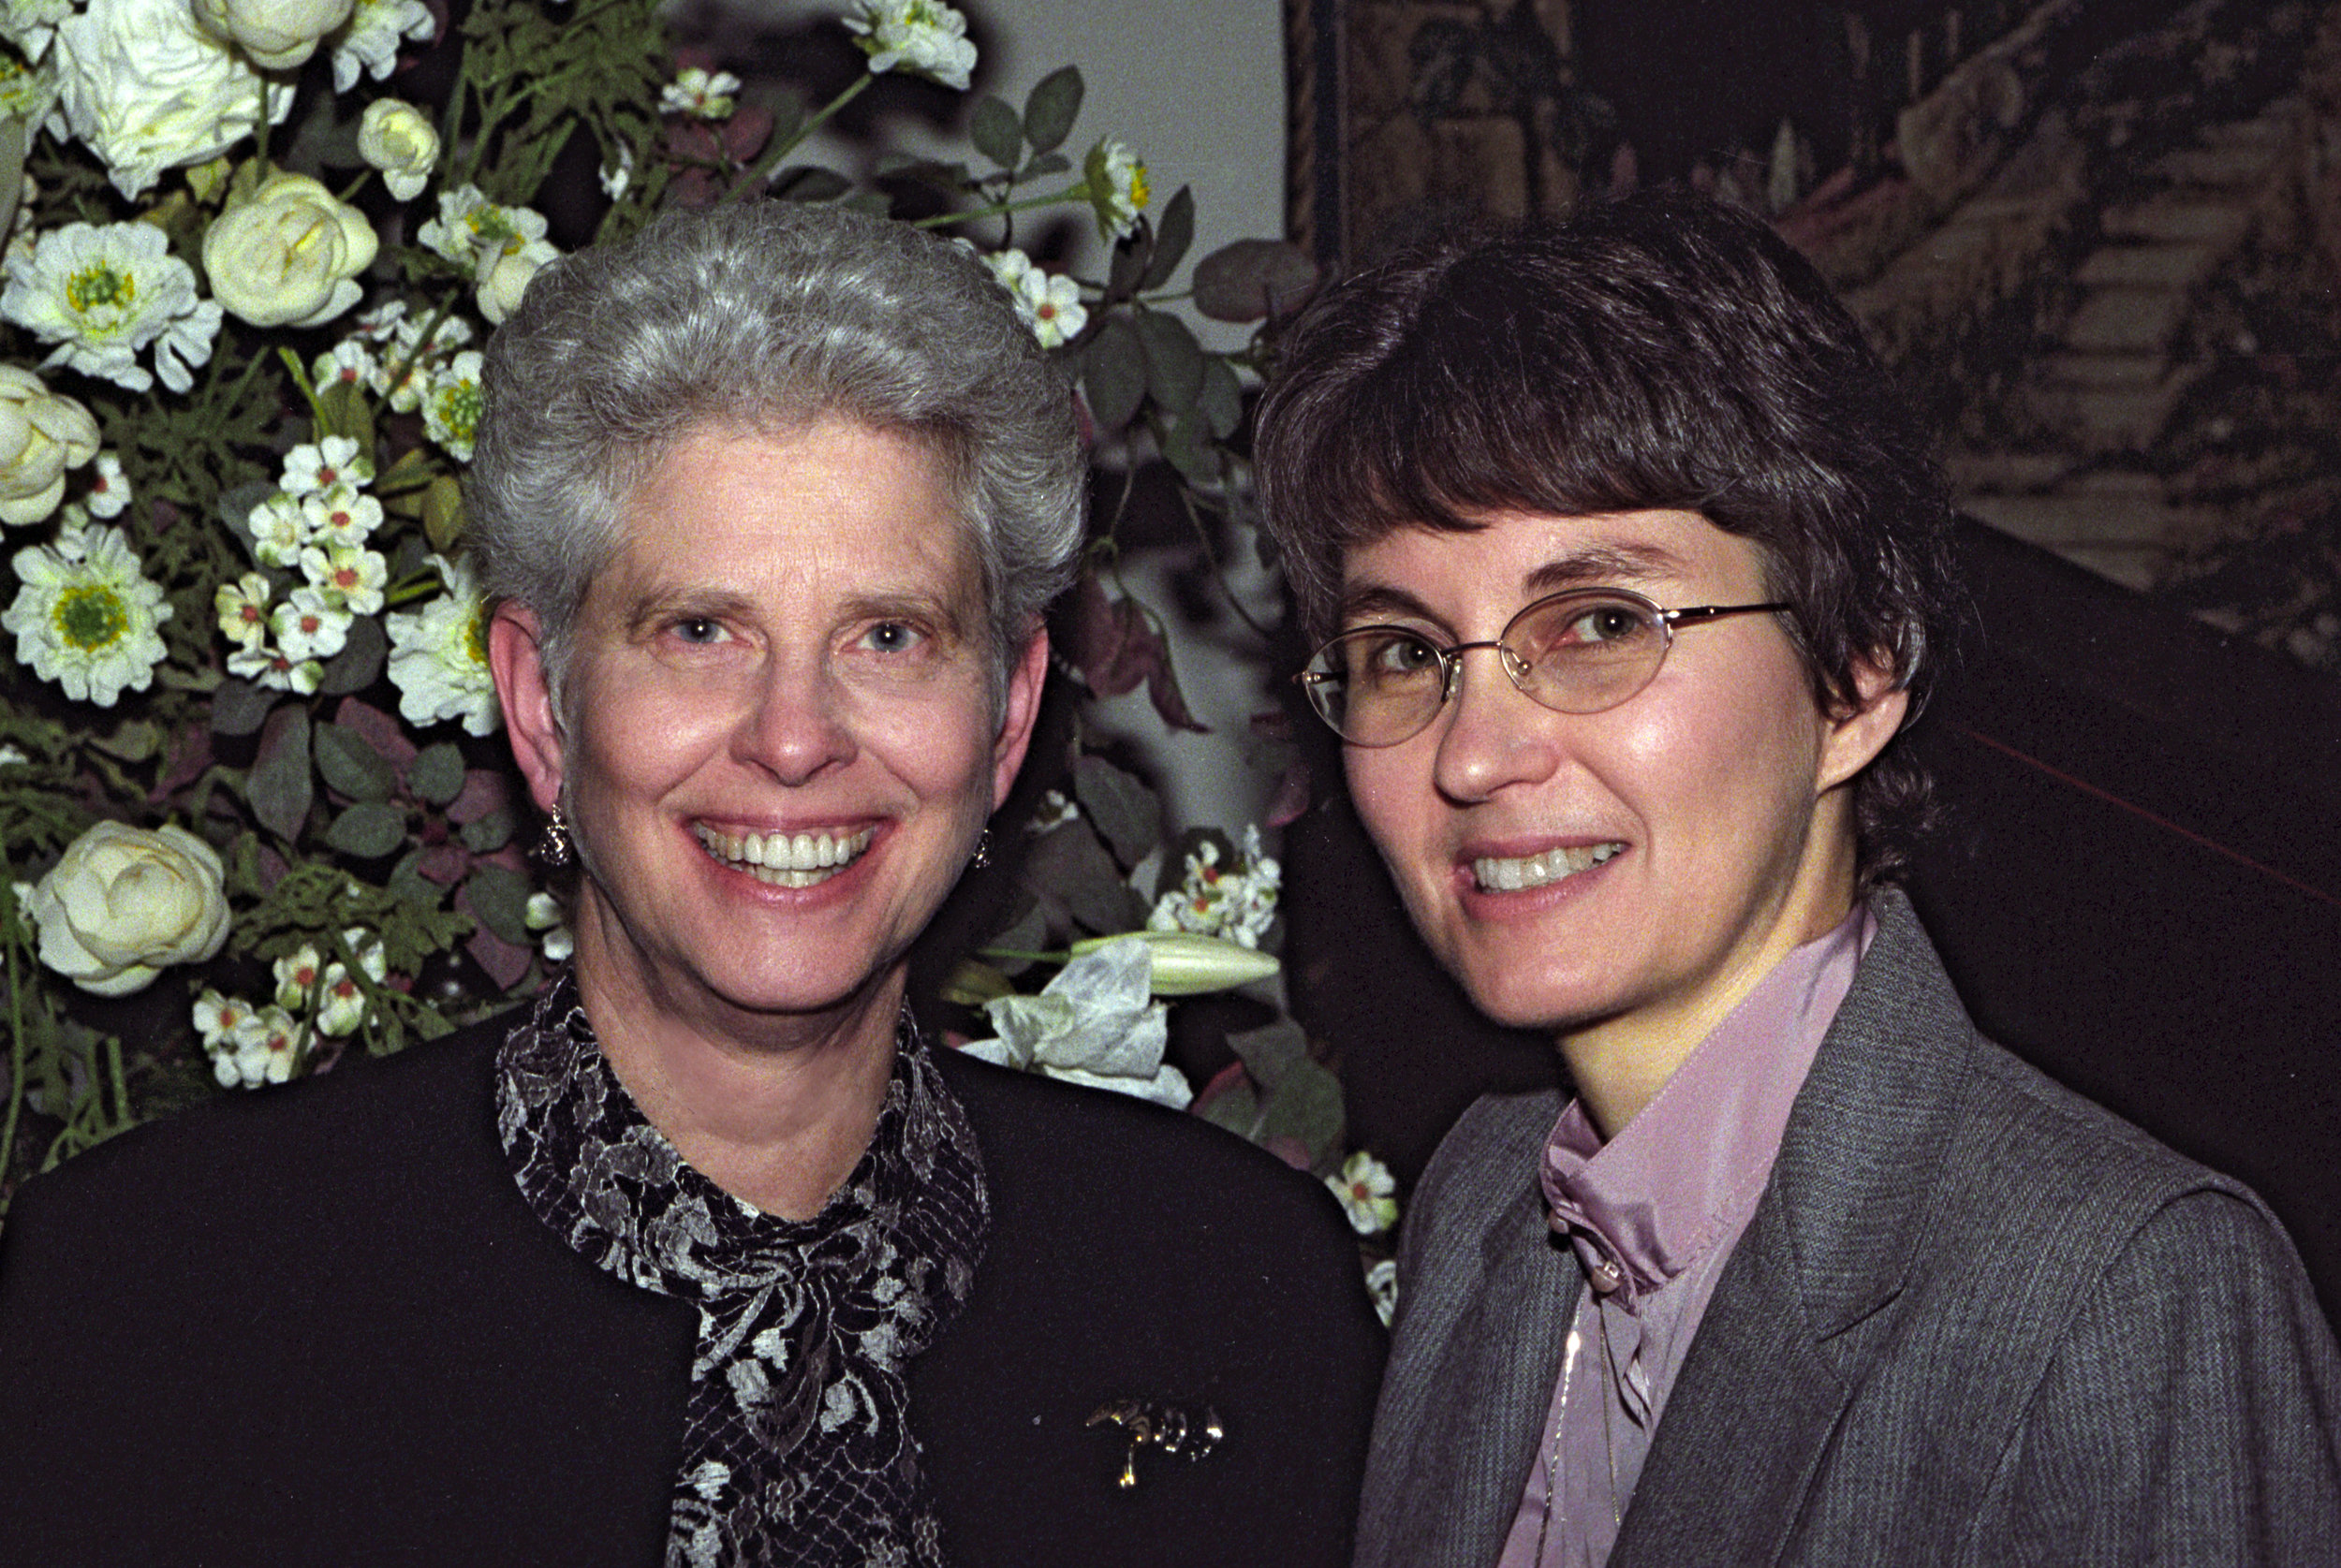 pat and barb 2 .jpg